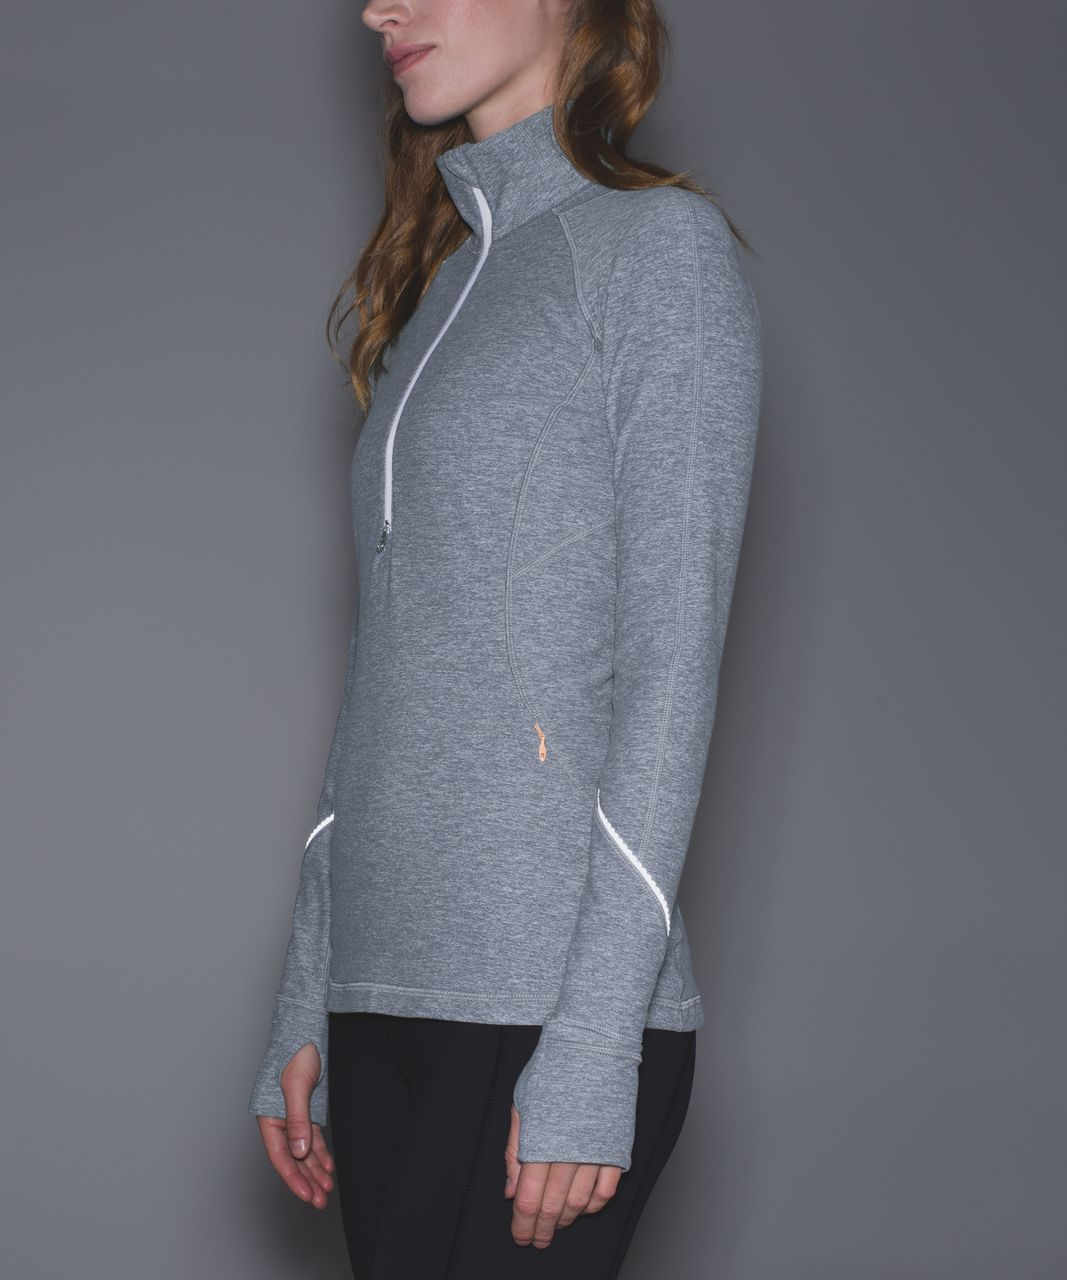 Lululemon Race Your Pace 1/2 Zip - Heathered Slate